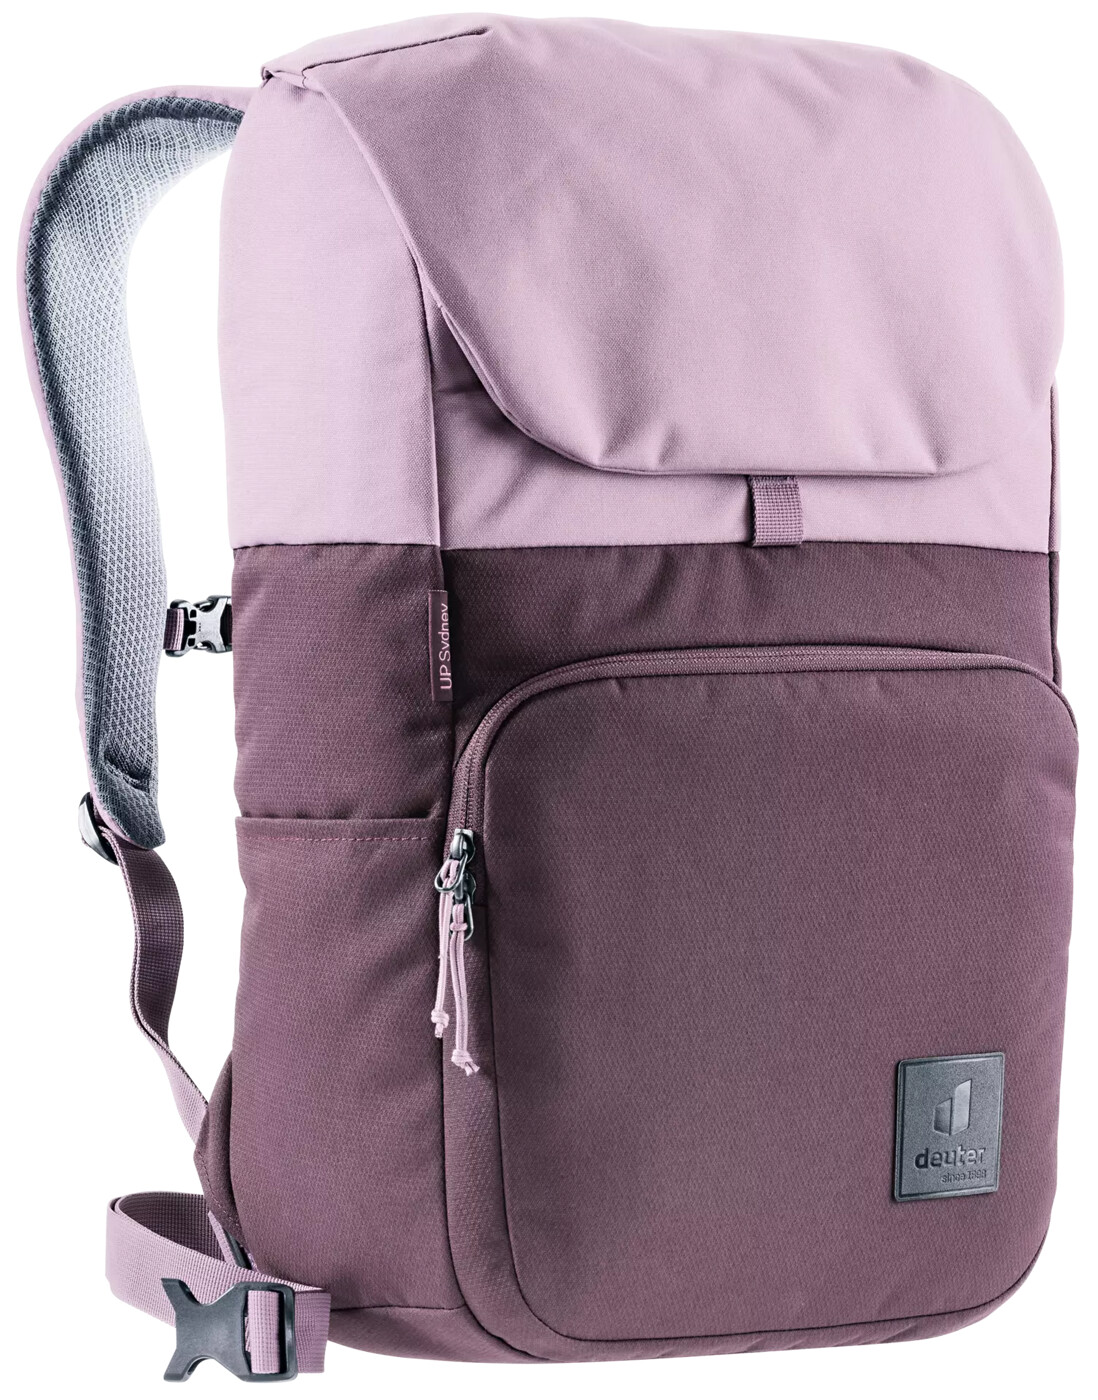 DEUTER UP Sydney Daypack